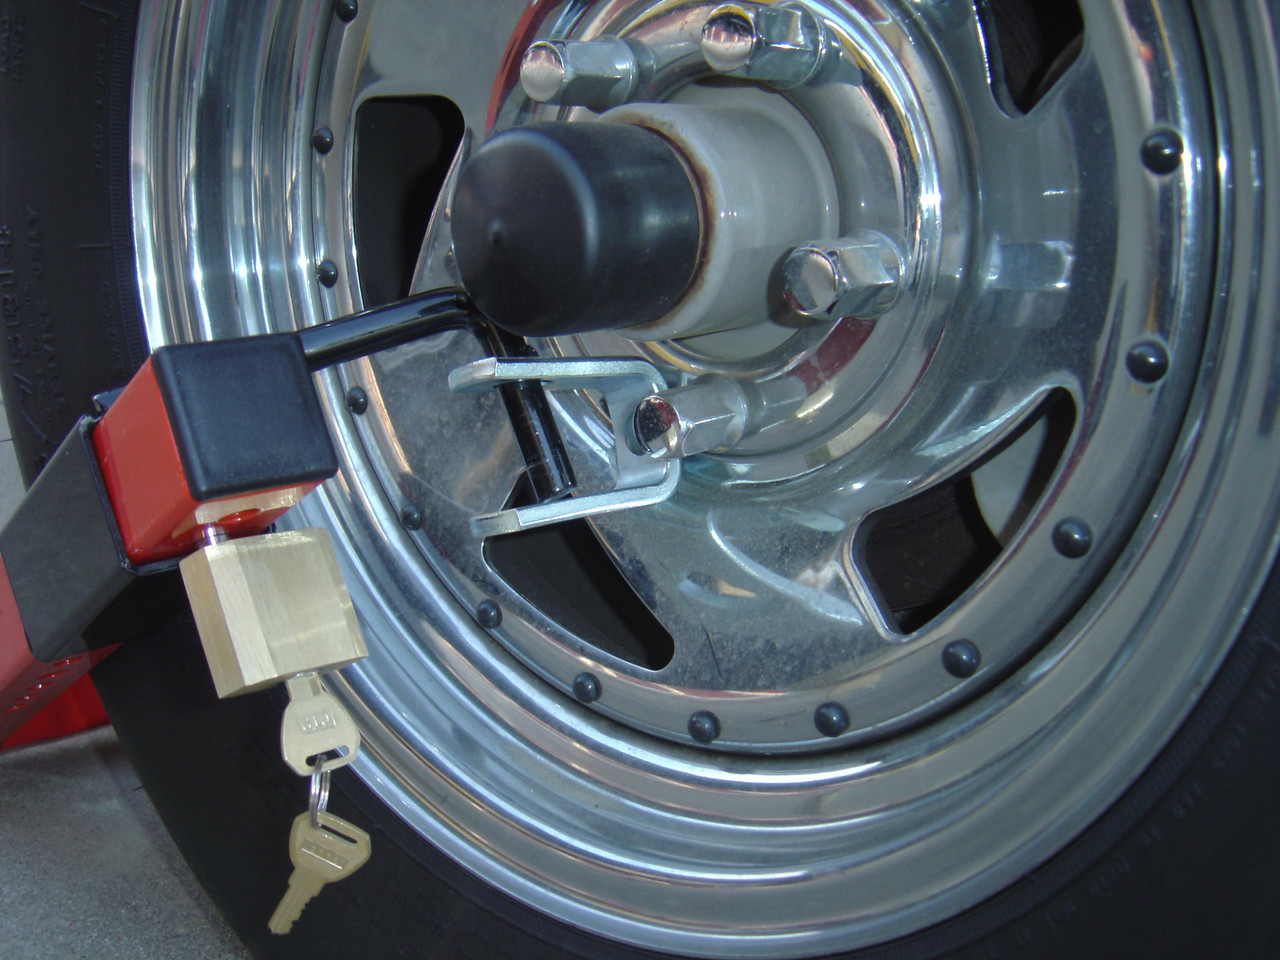 Although not shown, one of the lug nuts would be removed and the U bolt attached to the lug